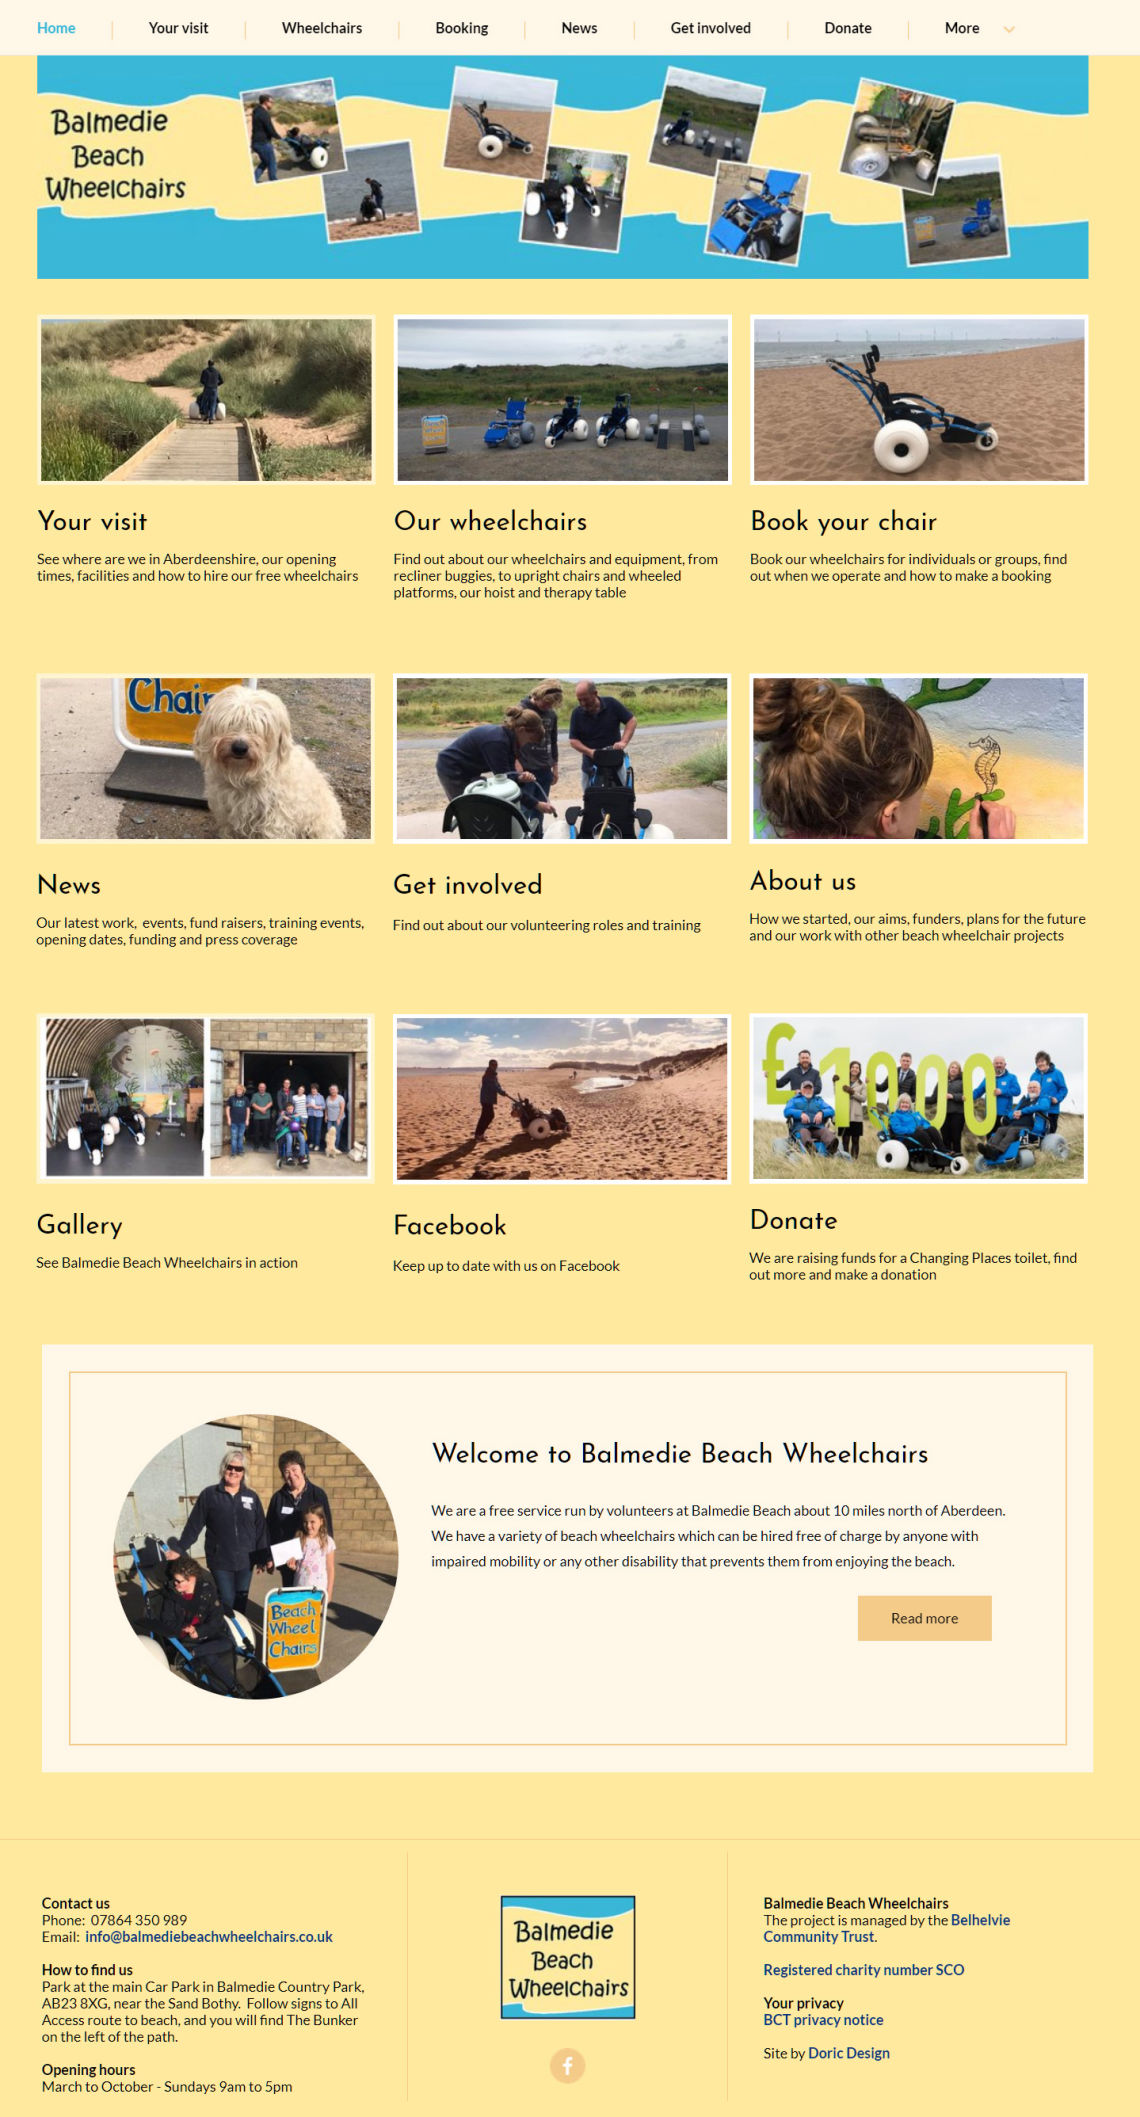 Homepage of the Balmedie Beach Wheelchair project